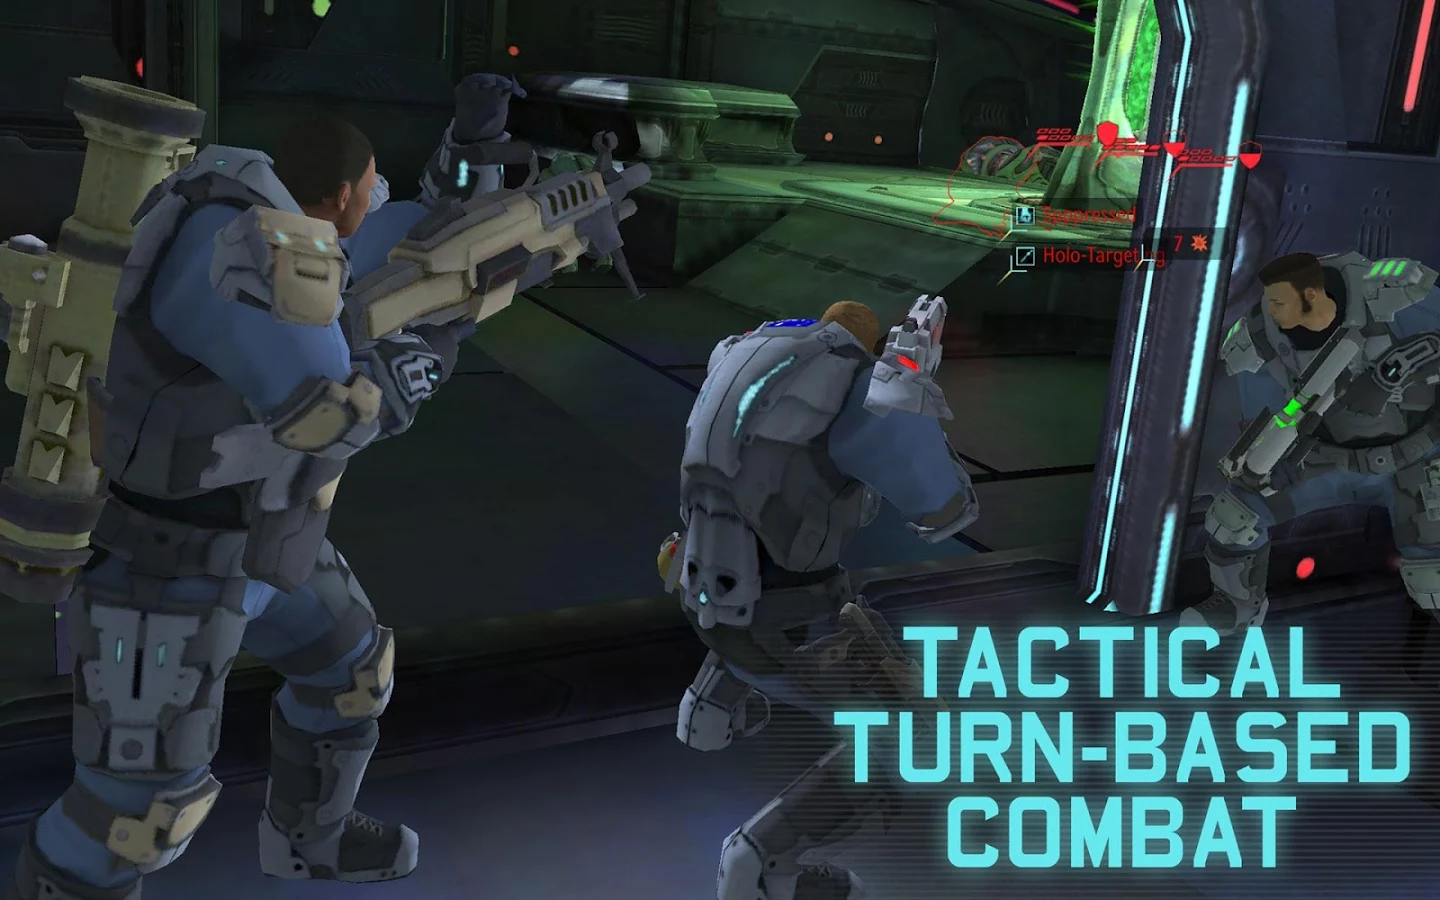 Buy XCOM: Enemy Unknown for Android starting today